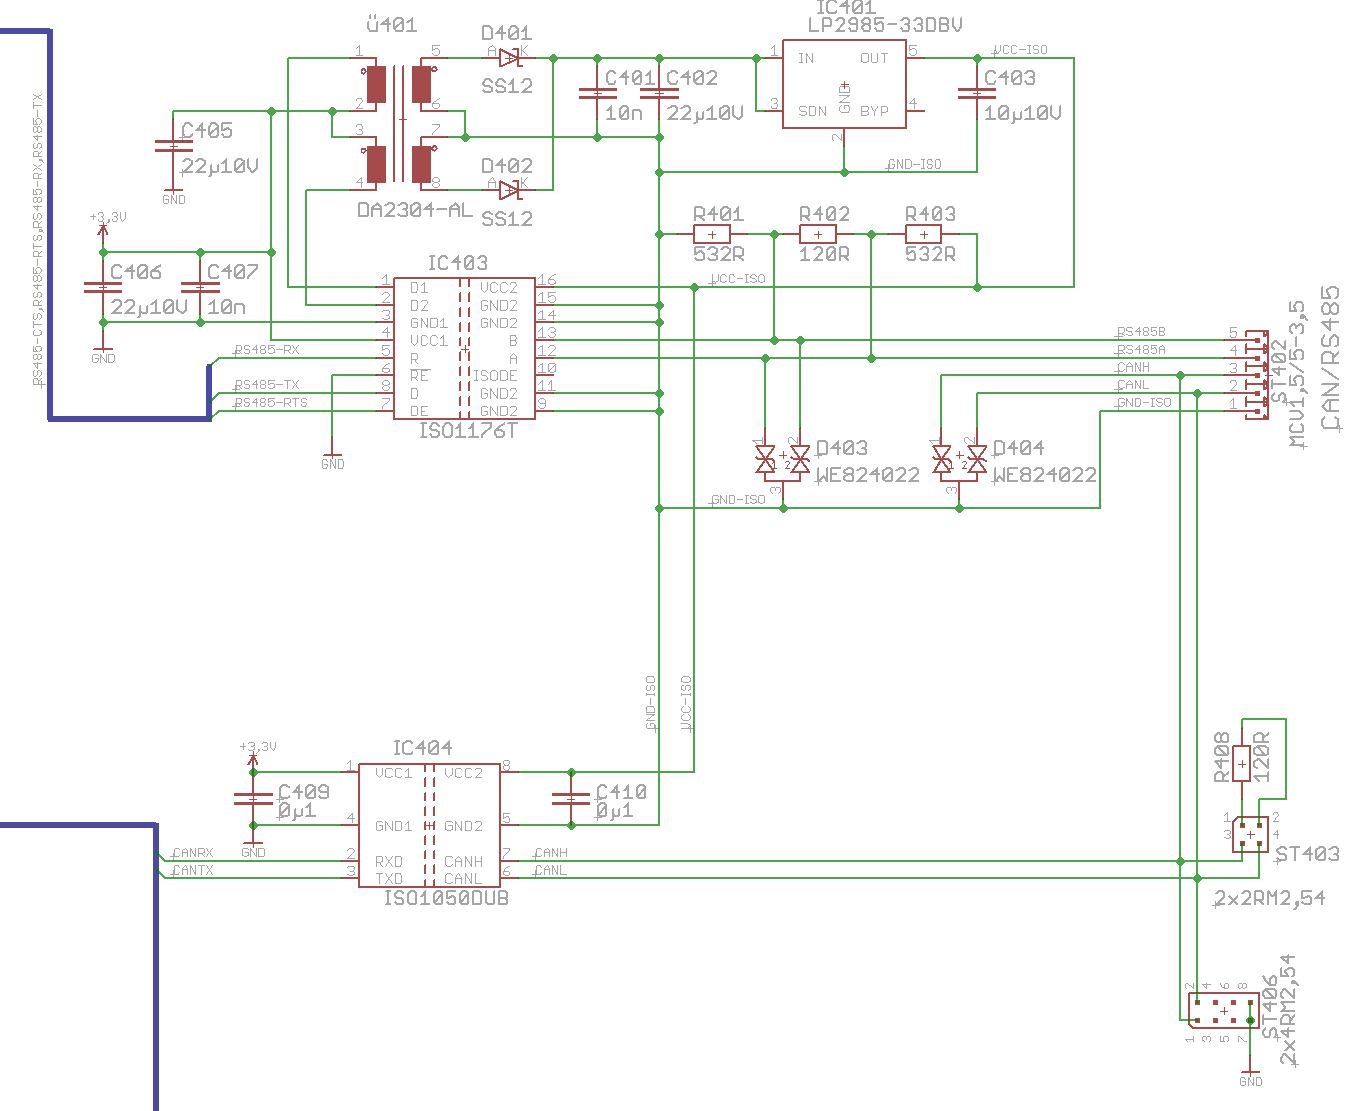 resolved  iso1176t for rs485  modbus   circuit correct